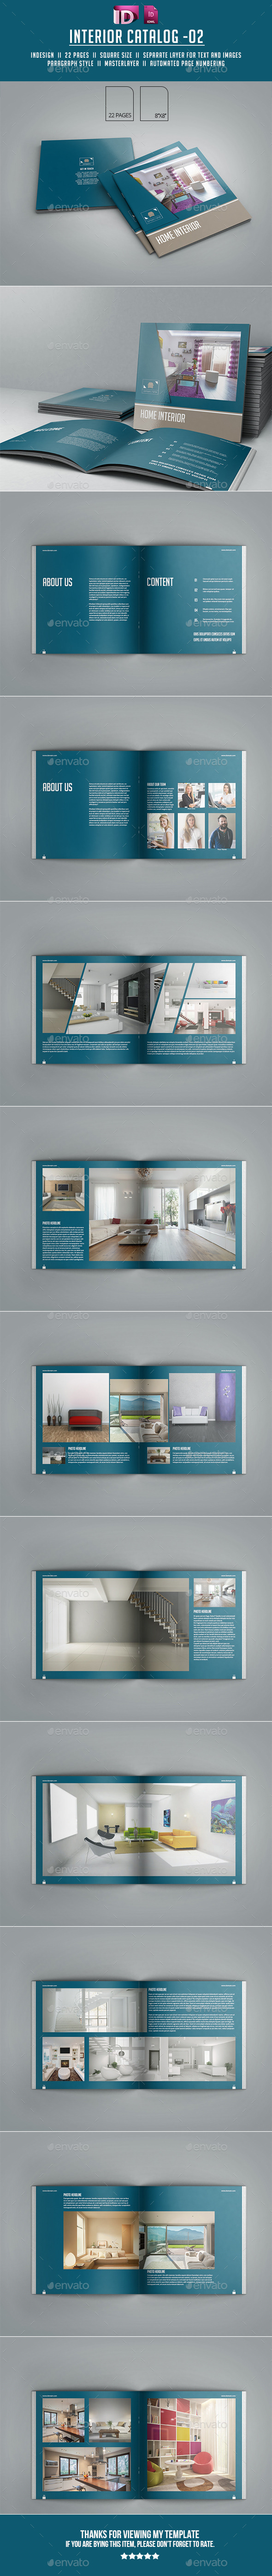 GraphicRiver Interior Catalog 01 11827117